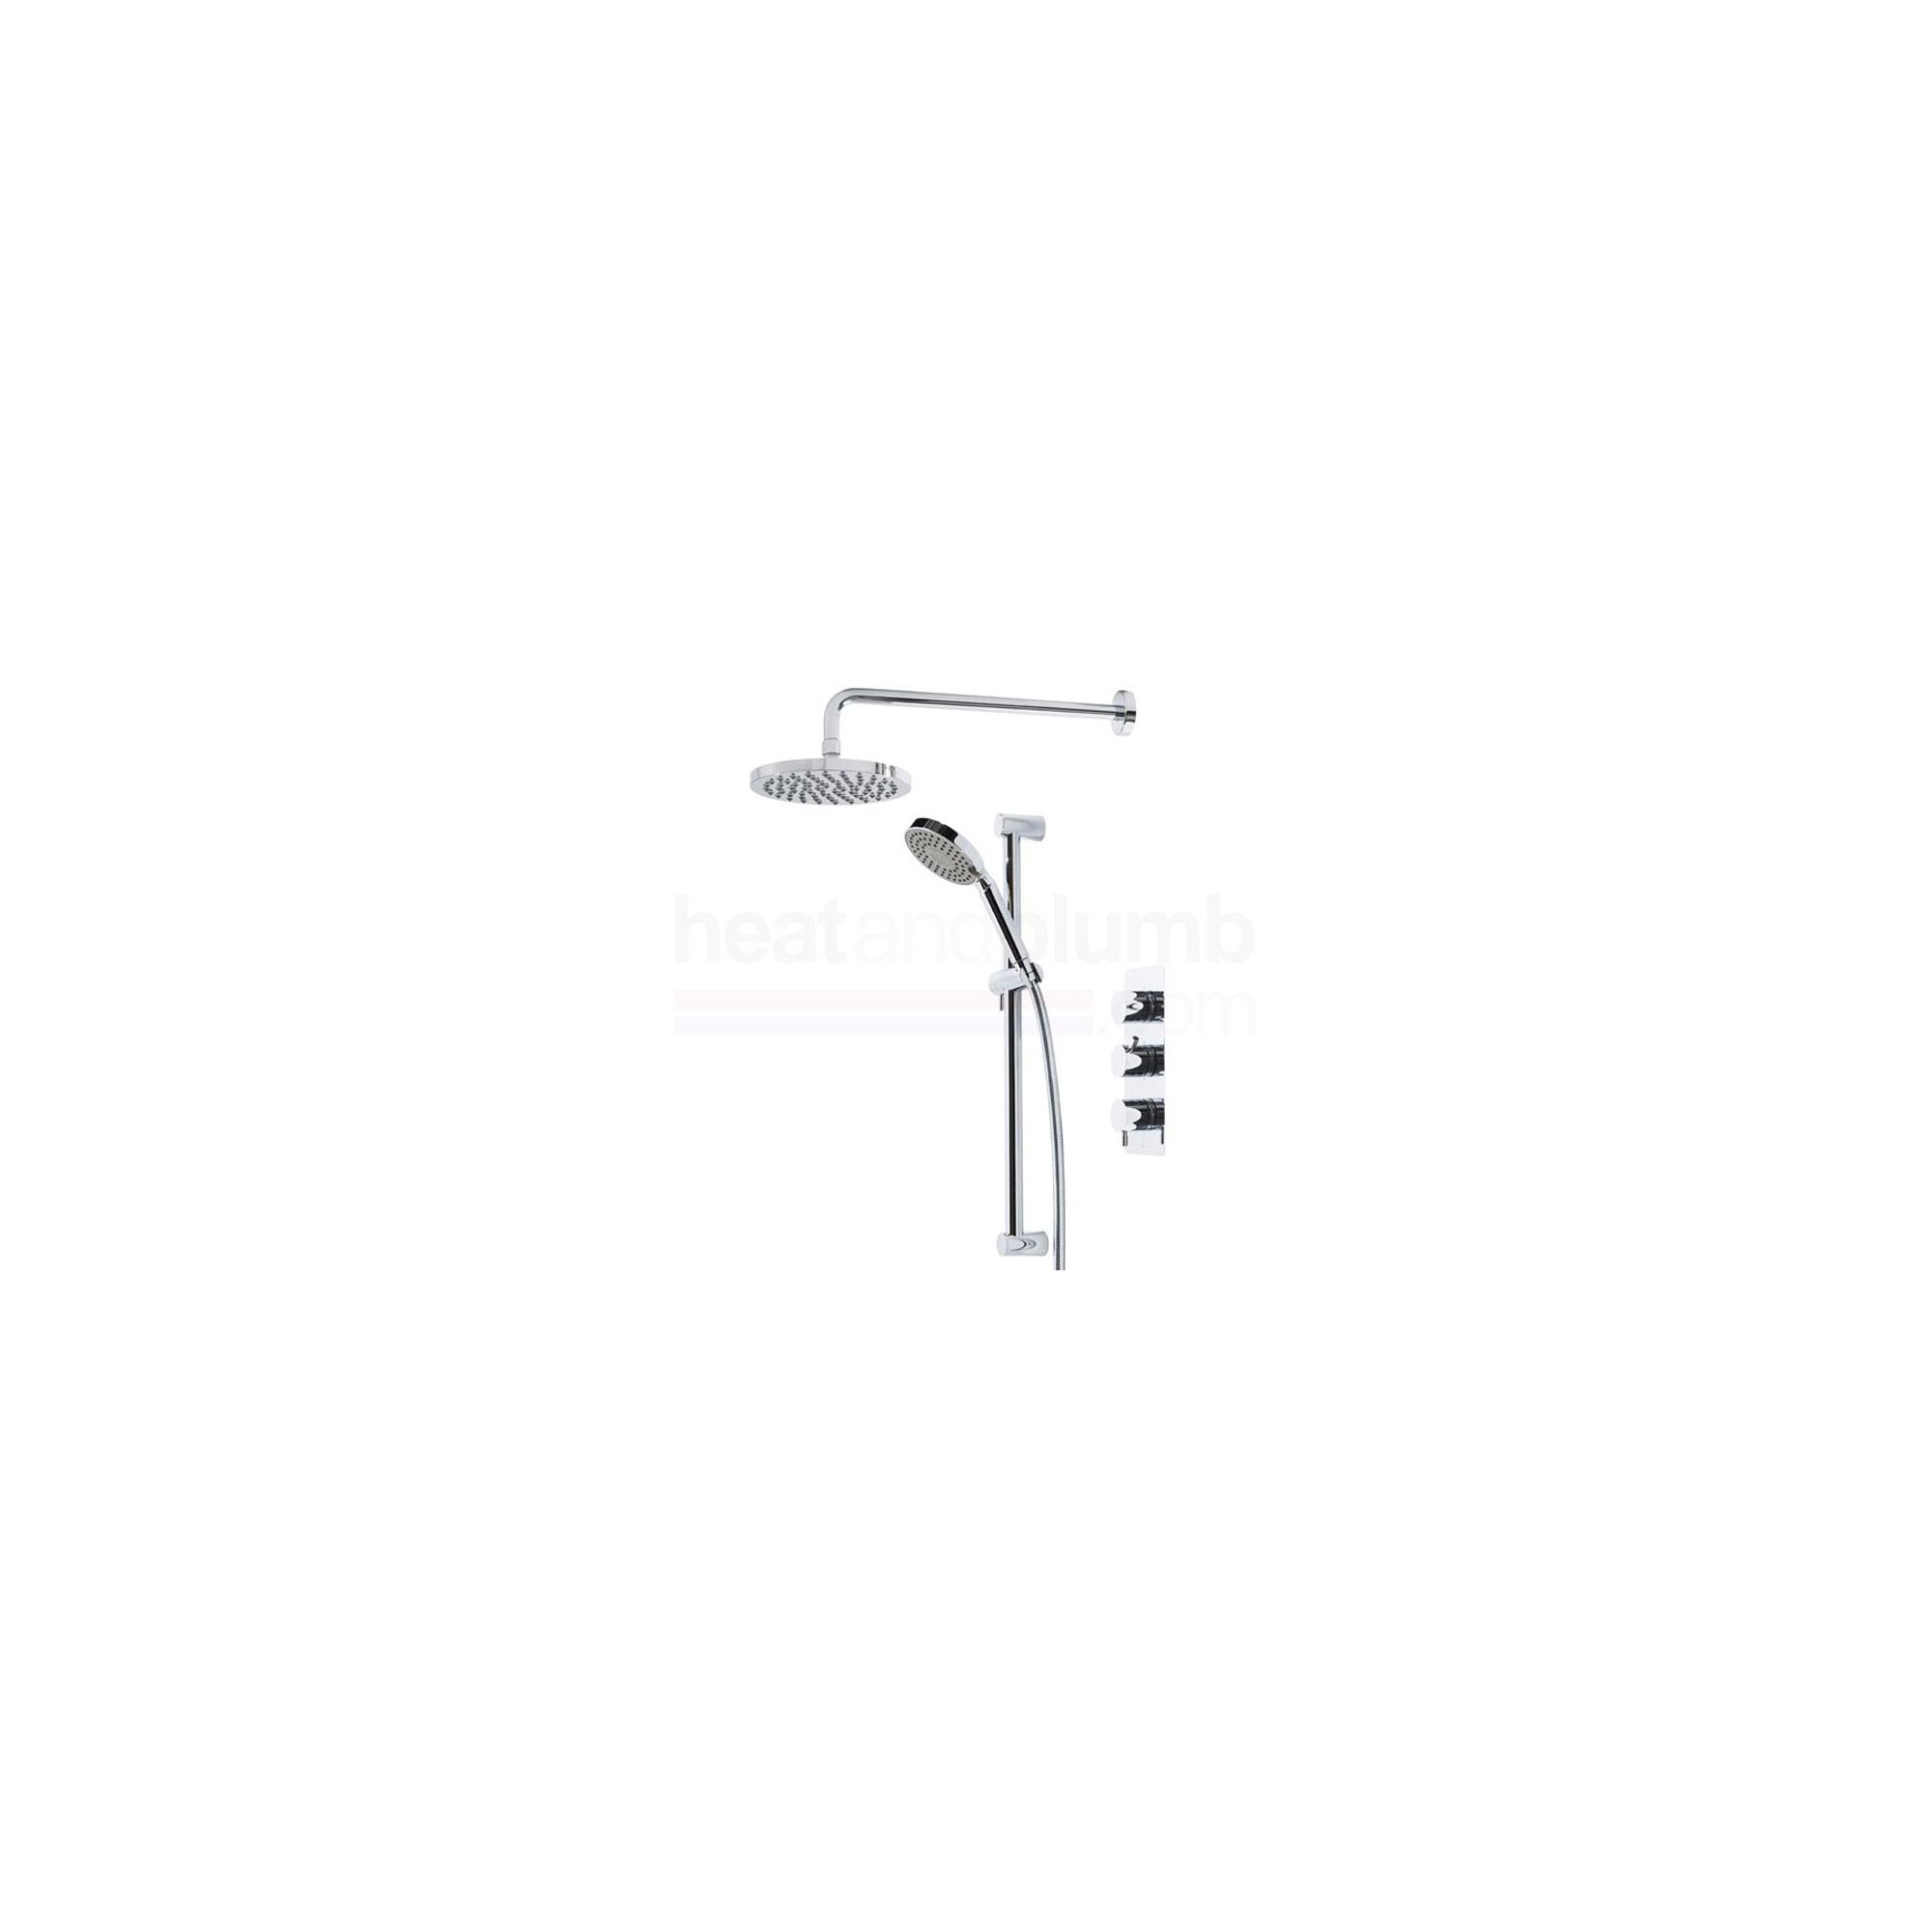 Tavistock Kinetic Thermostatic Triple Concealed Shower Valve with Round Shower Head & Multi Function Handset at Tesco Direct